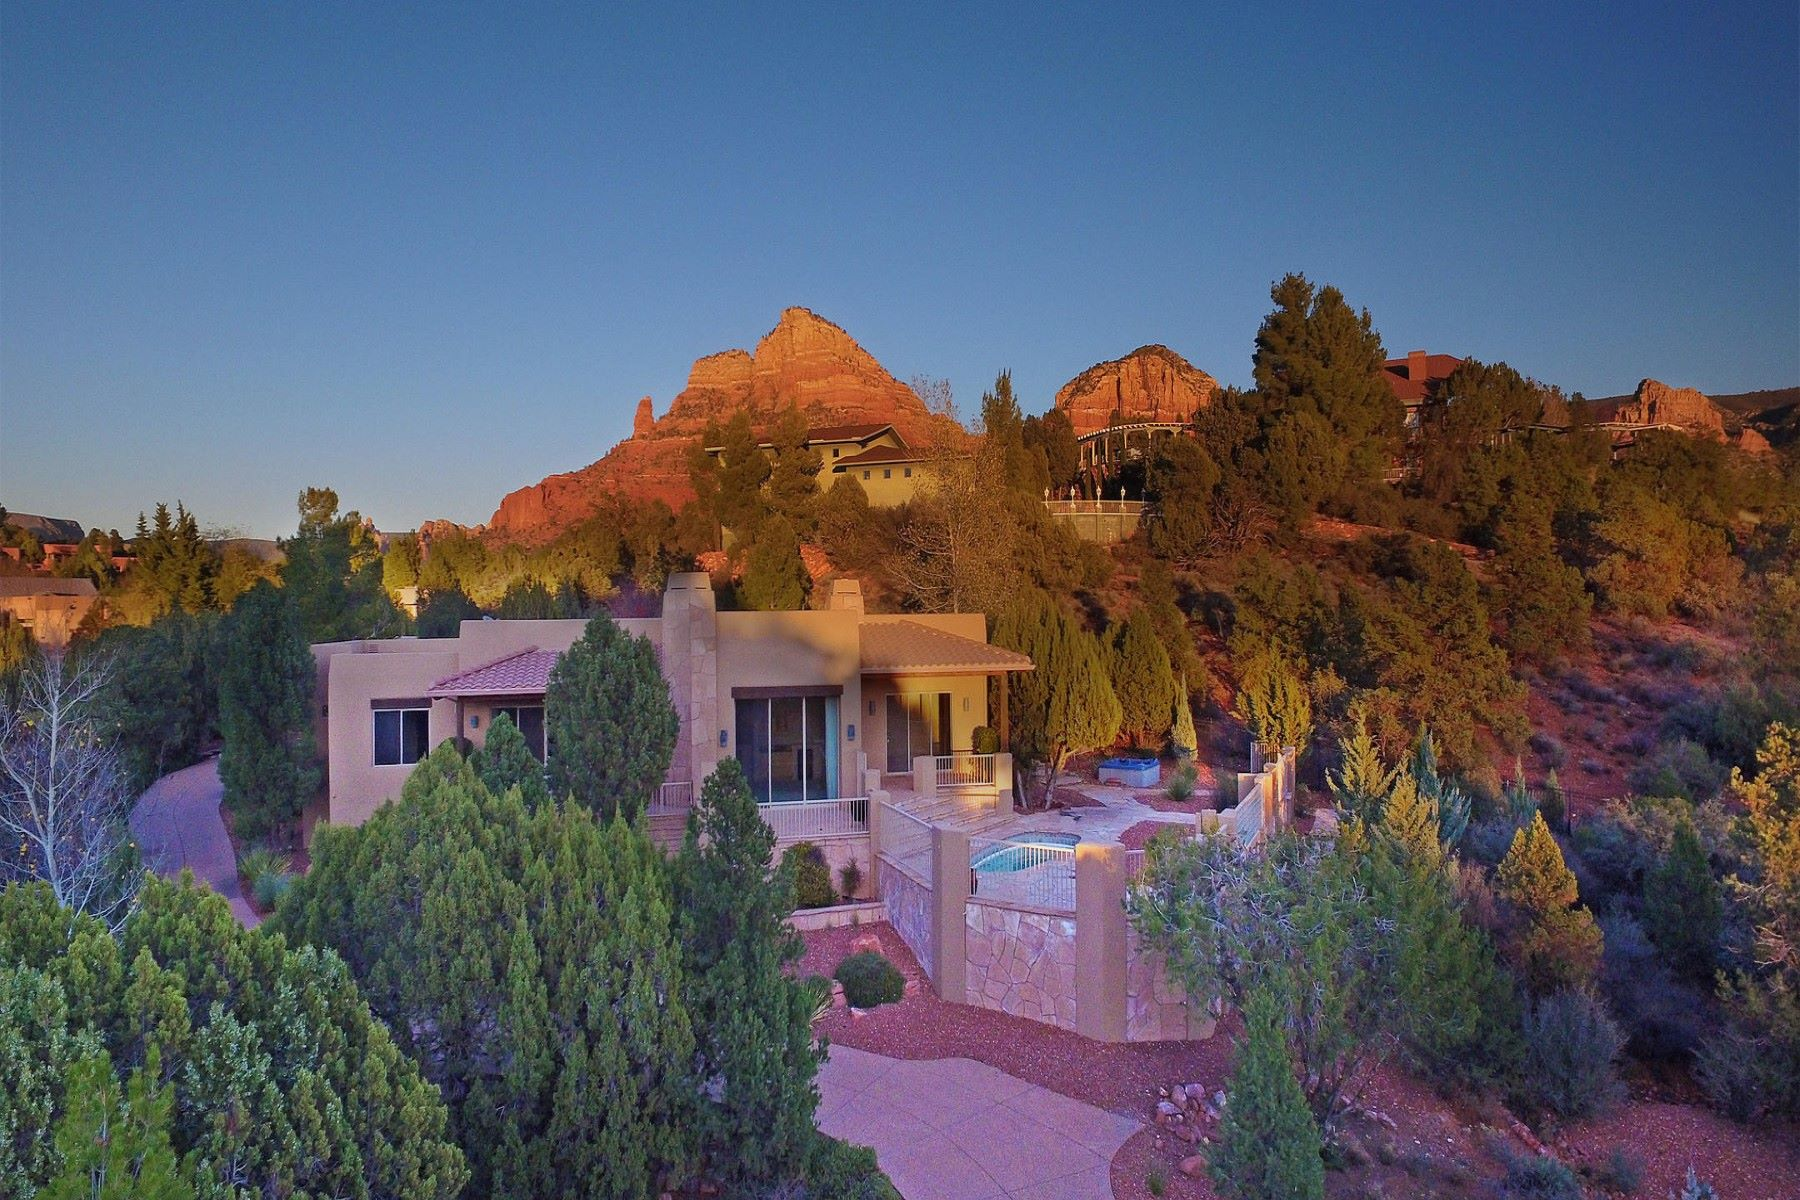 Casa Unifamiliar por un Venta en Gorgeous home with captivating views 45 Scenic Drive Sedona, Arizona, 86336 Estados Unidos